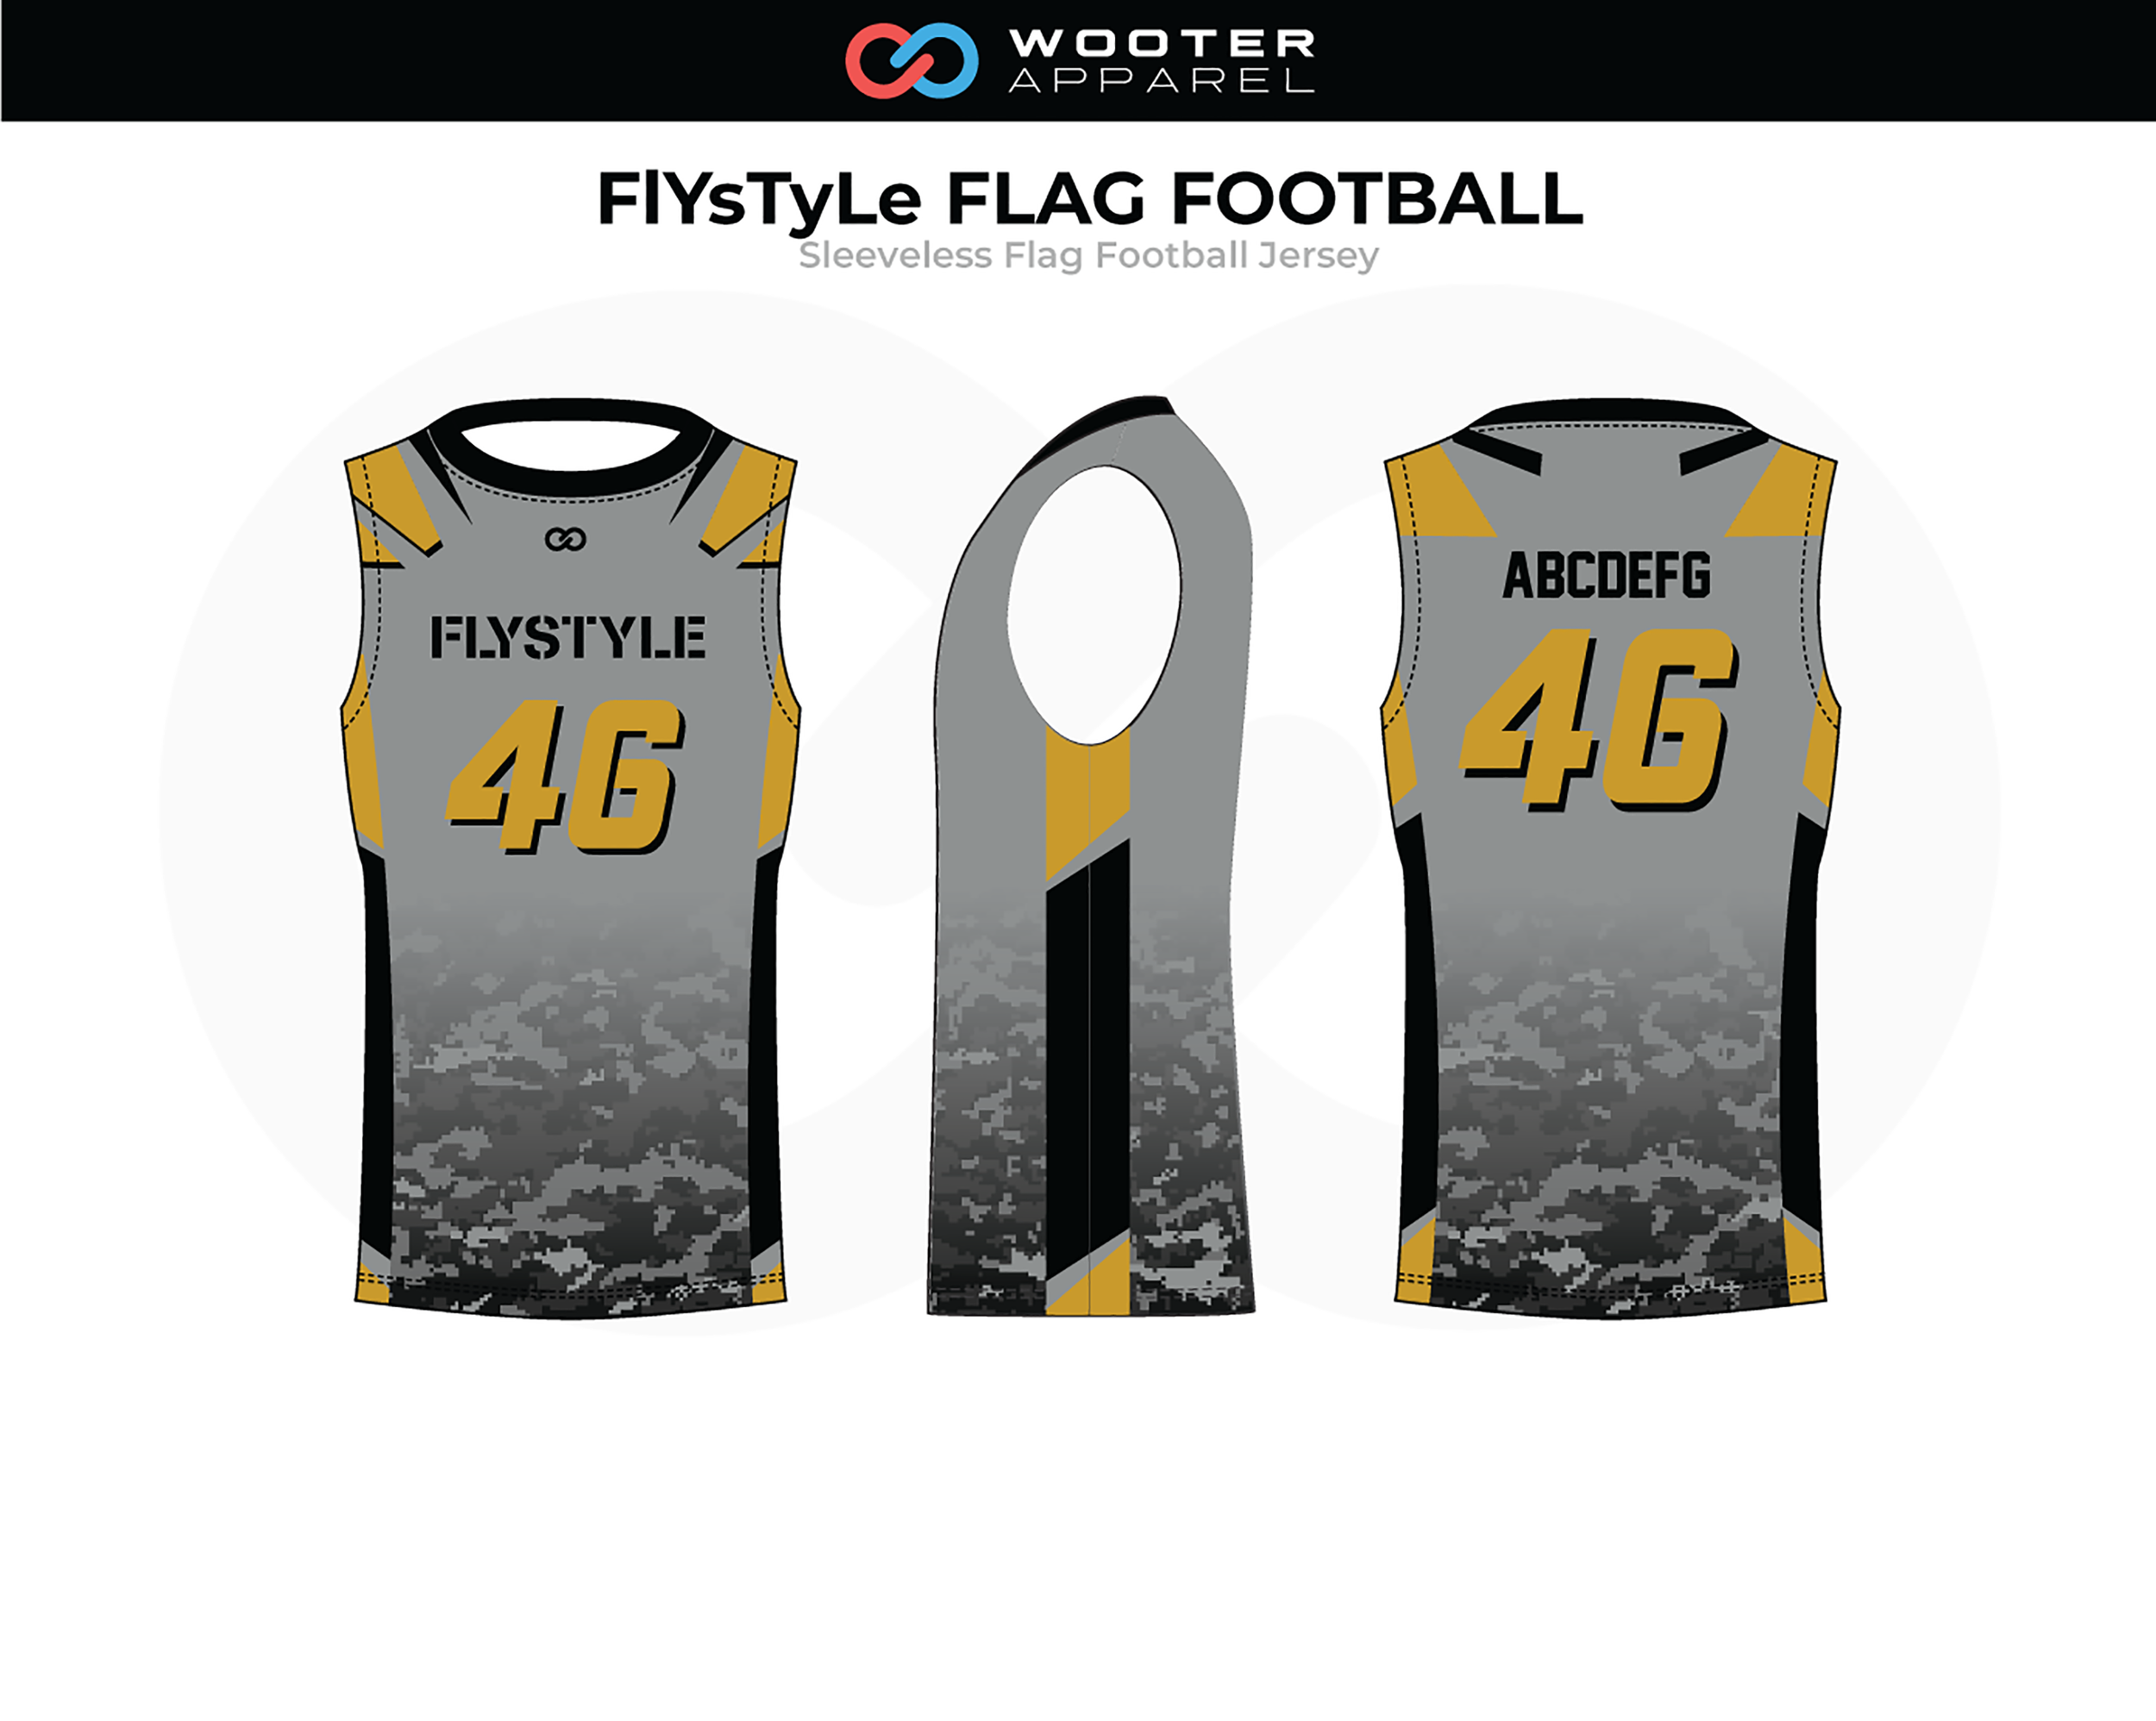 on sale 3a0c5 7a69d Flag Football — Wooter Apparel | Team Uniforms and Custom ...